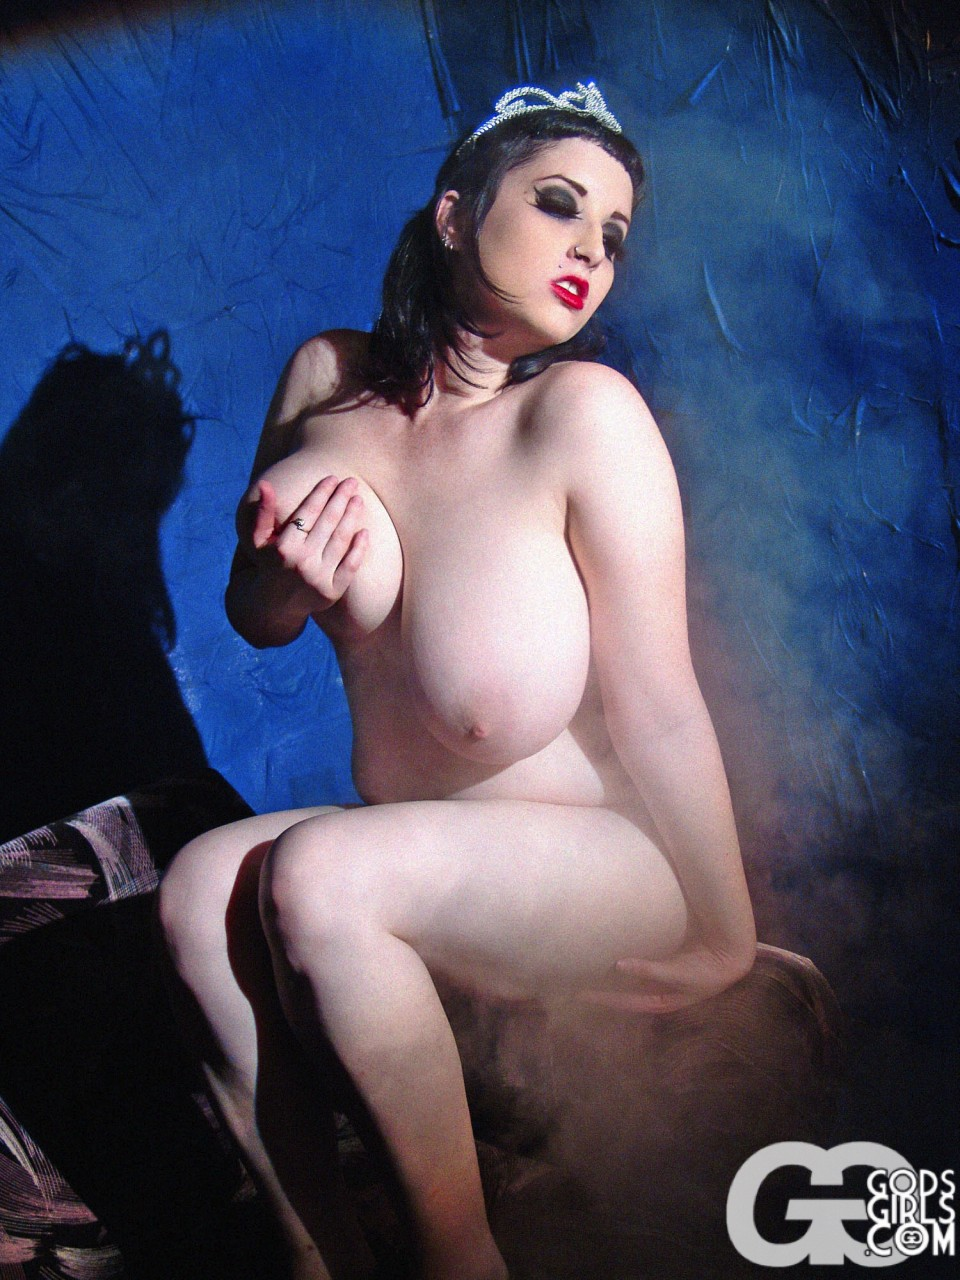 Young gothic chicks nude — 1